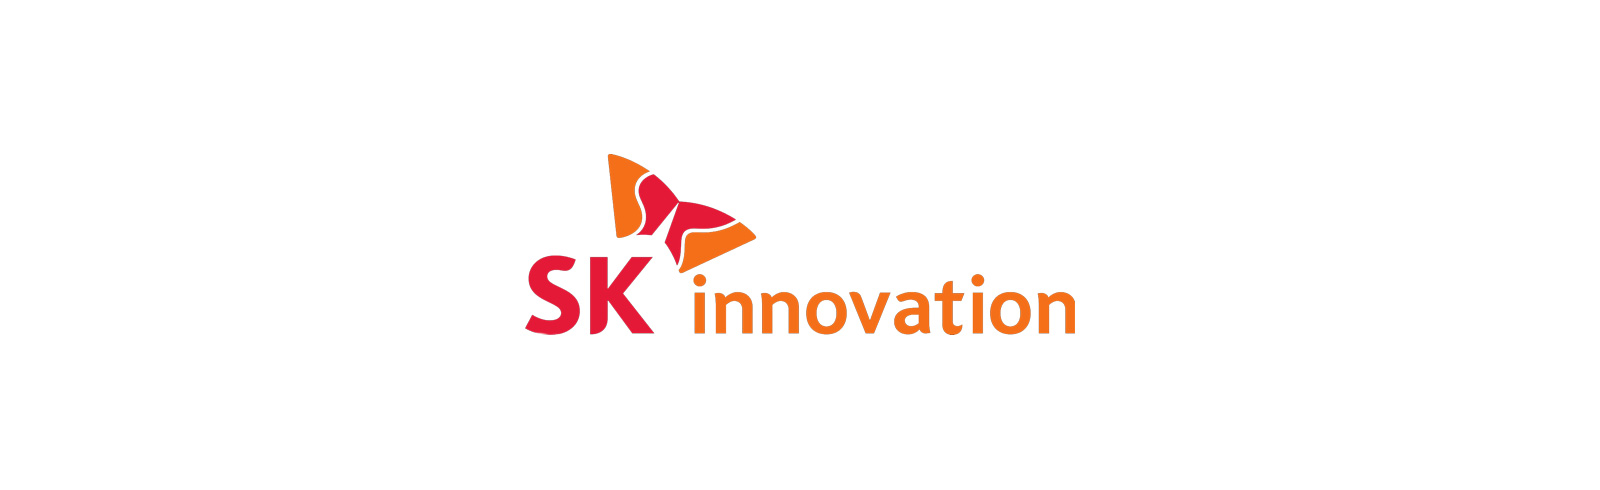 SK Innovation is aiming to diversify the supply of battery notching equipment